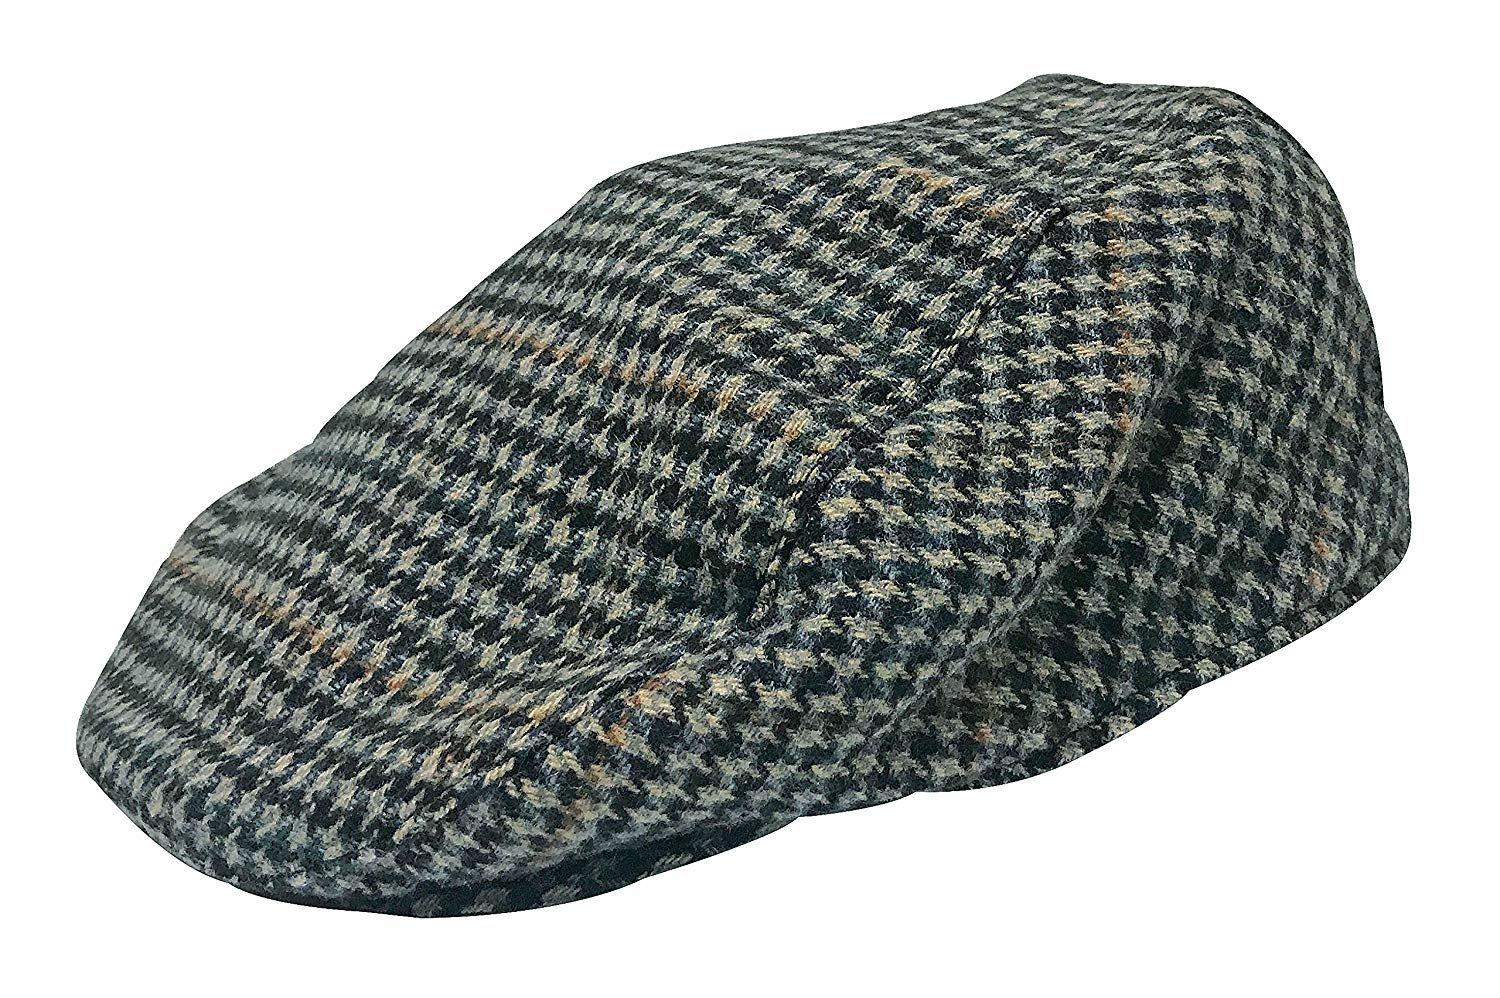 Get Quotations · Sock Snob Mens Vintage Houndstooth Plaid Wool Blend Winter  newsboy Flat IVY Cap Hat 0c4eb2068c79